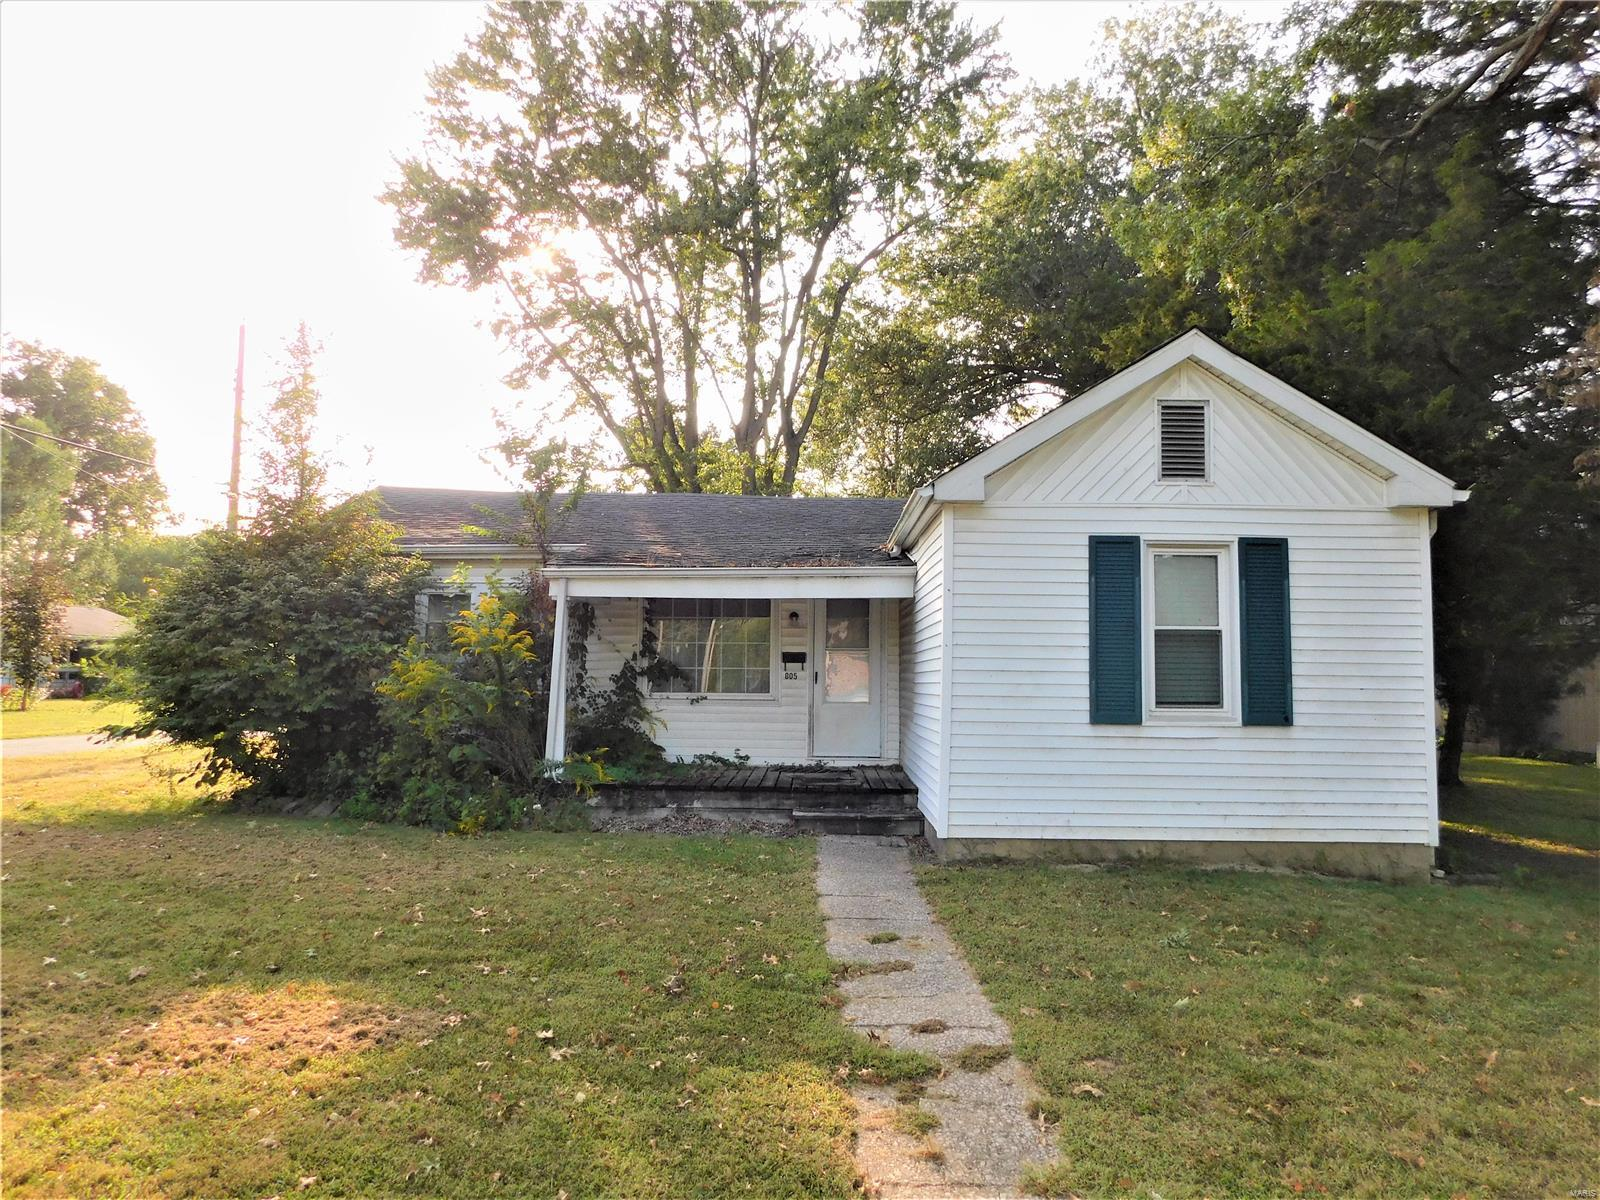 805 S 1st Street Property Photo - Benton, IL real estate listing